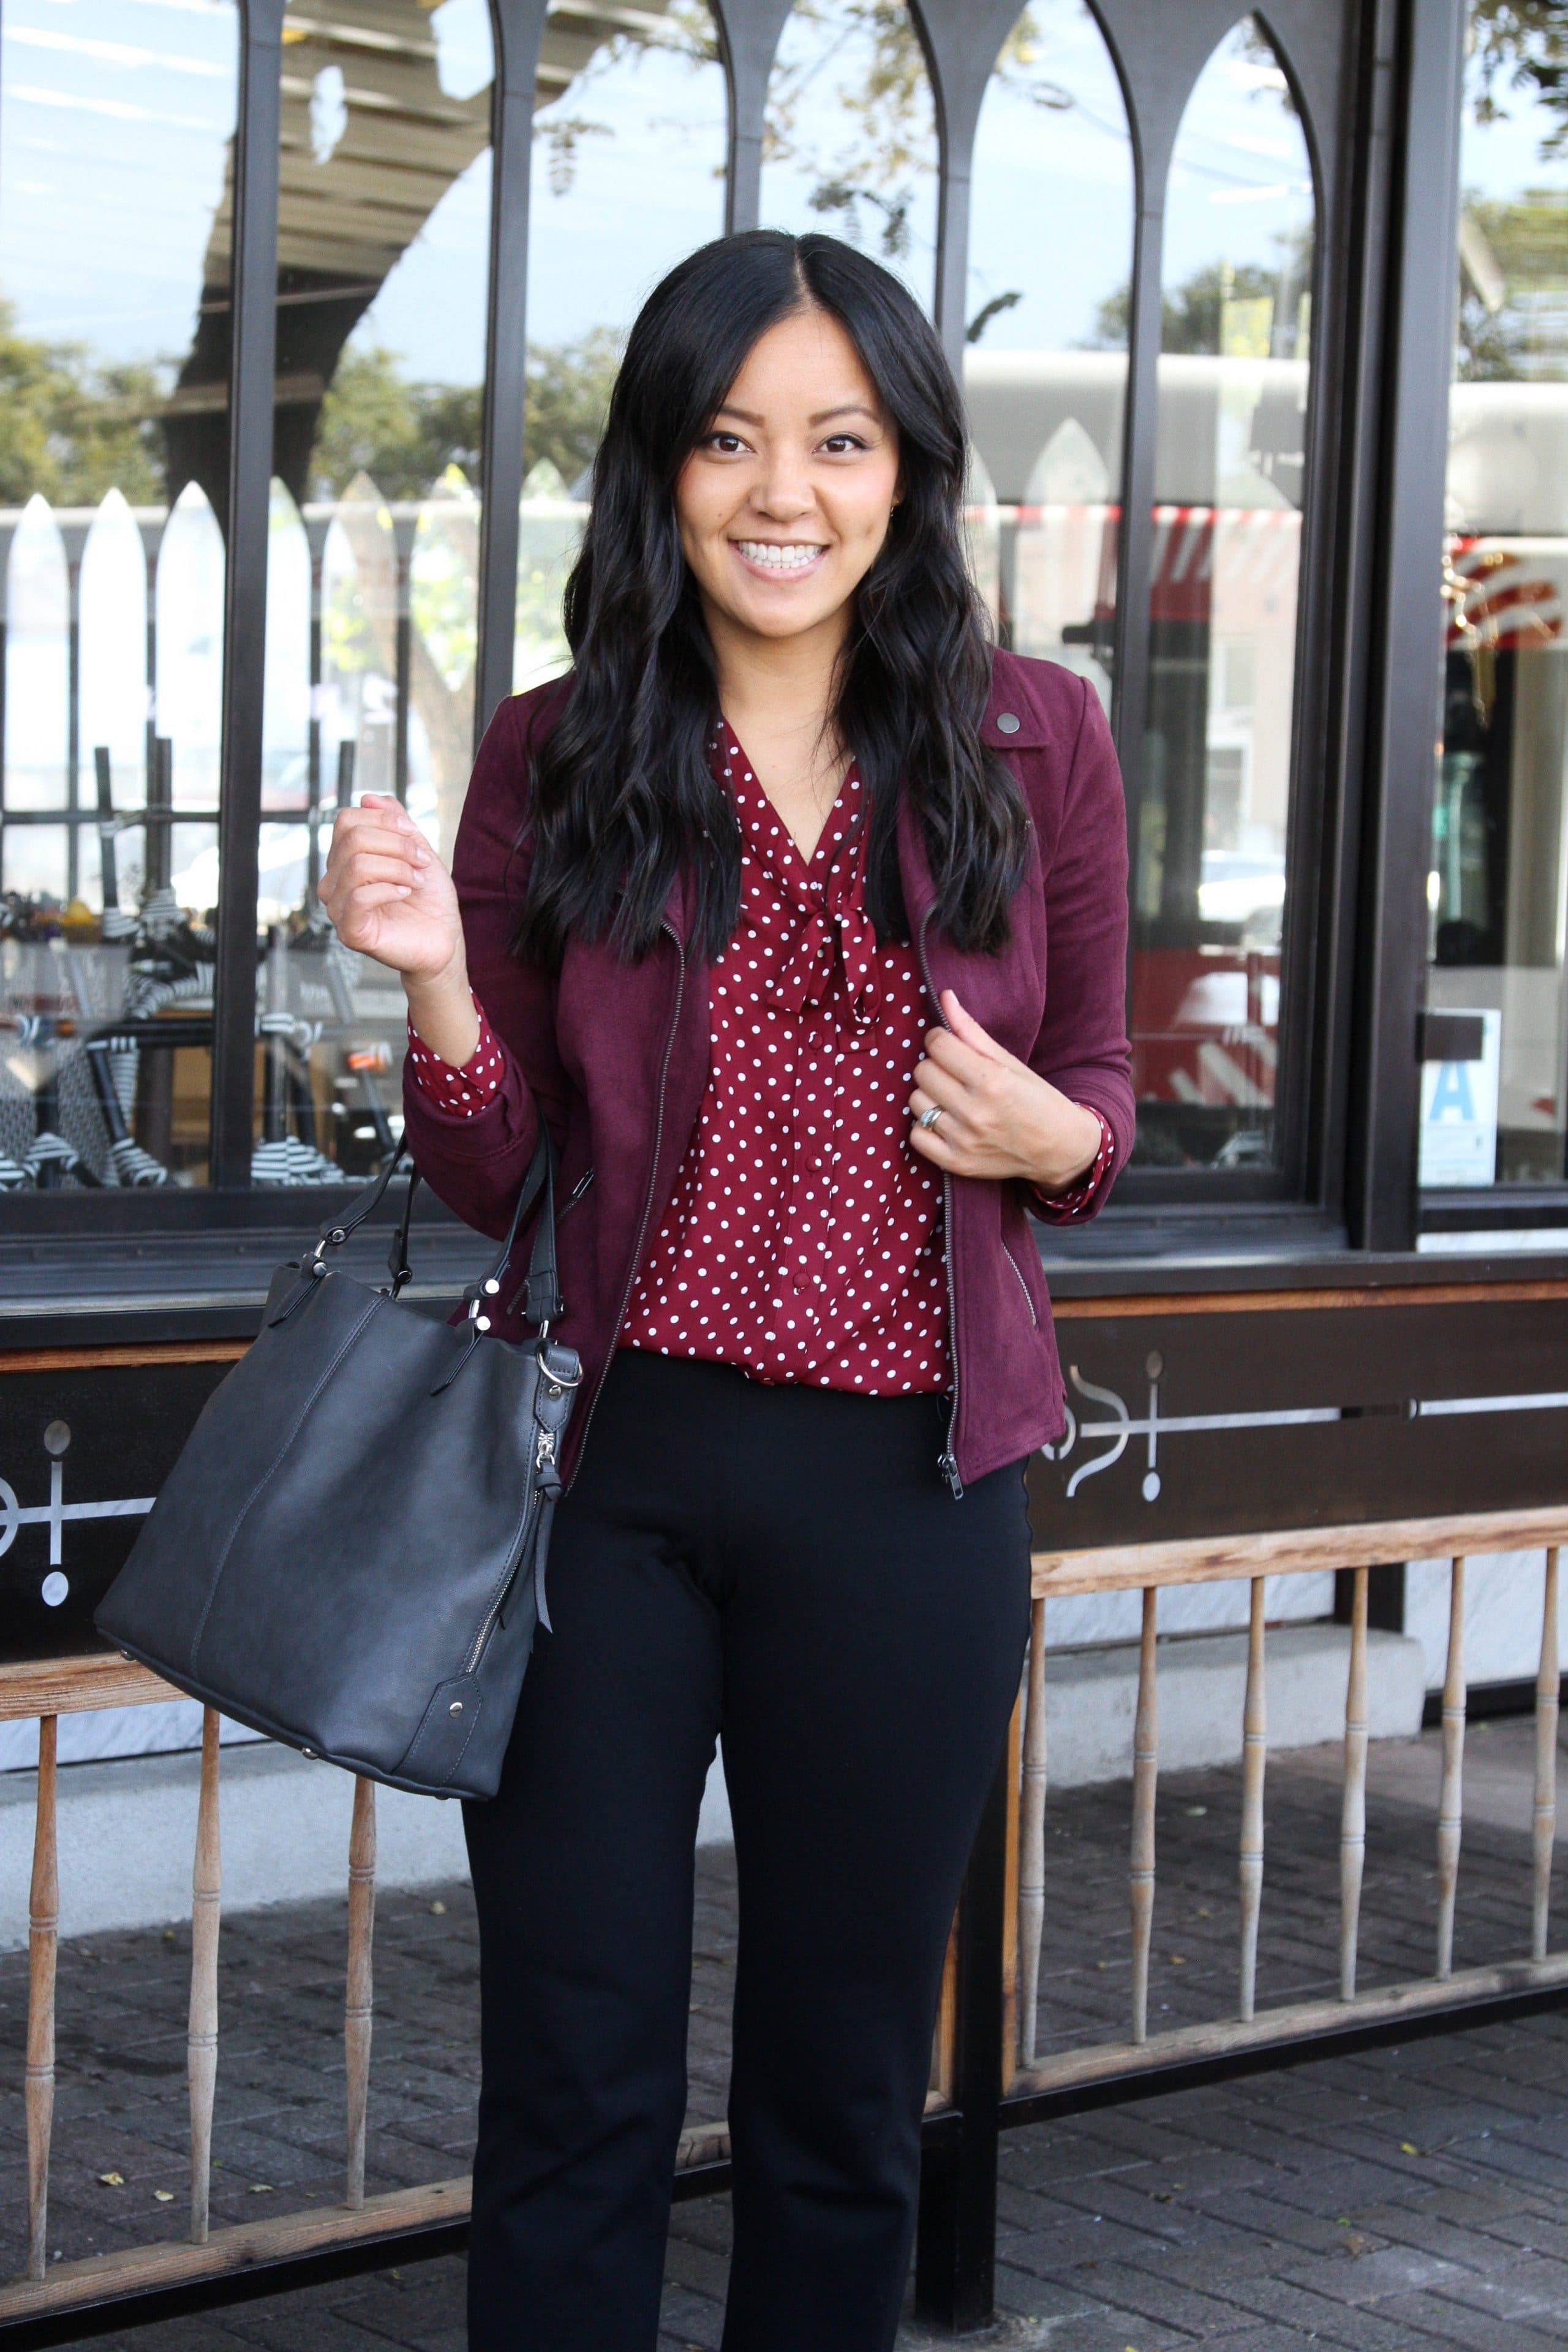 maroon polka dot top + maroon moto jacket + black straight pants + black booties + grey purse + business casual outfit